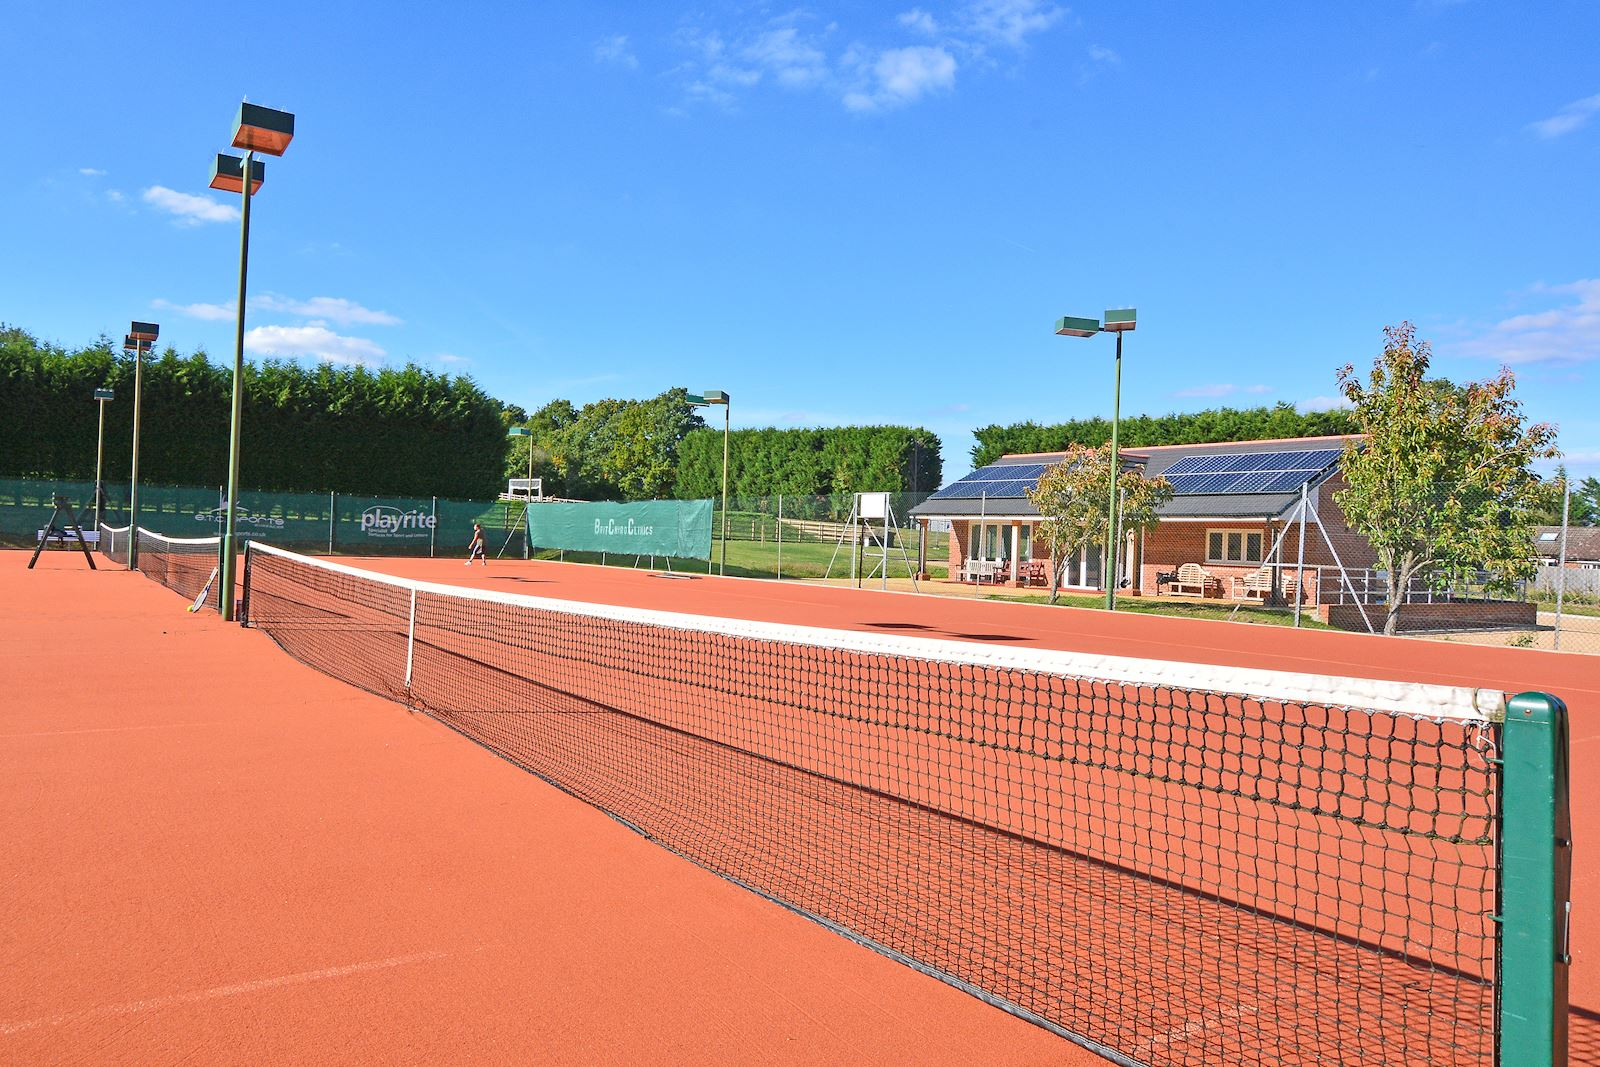 Slinfold Tennis Club are delighted with their new clay tennis courts, part of a two-year, award winning facilities upgrade.